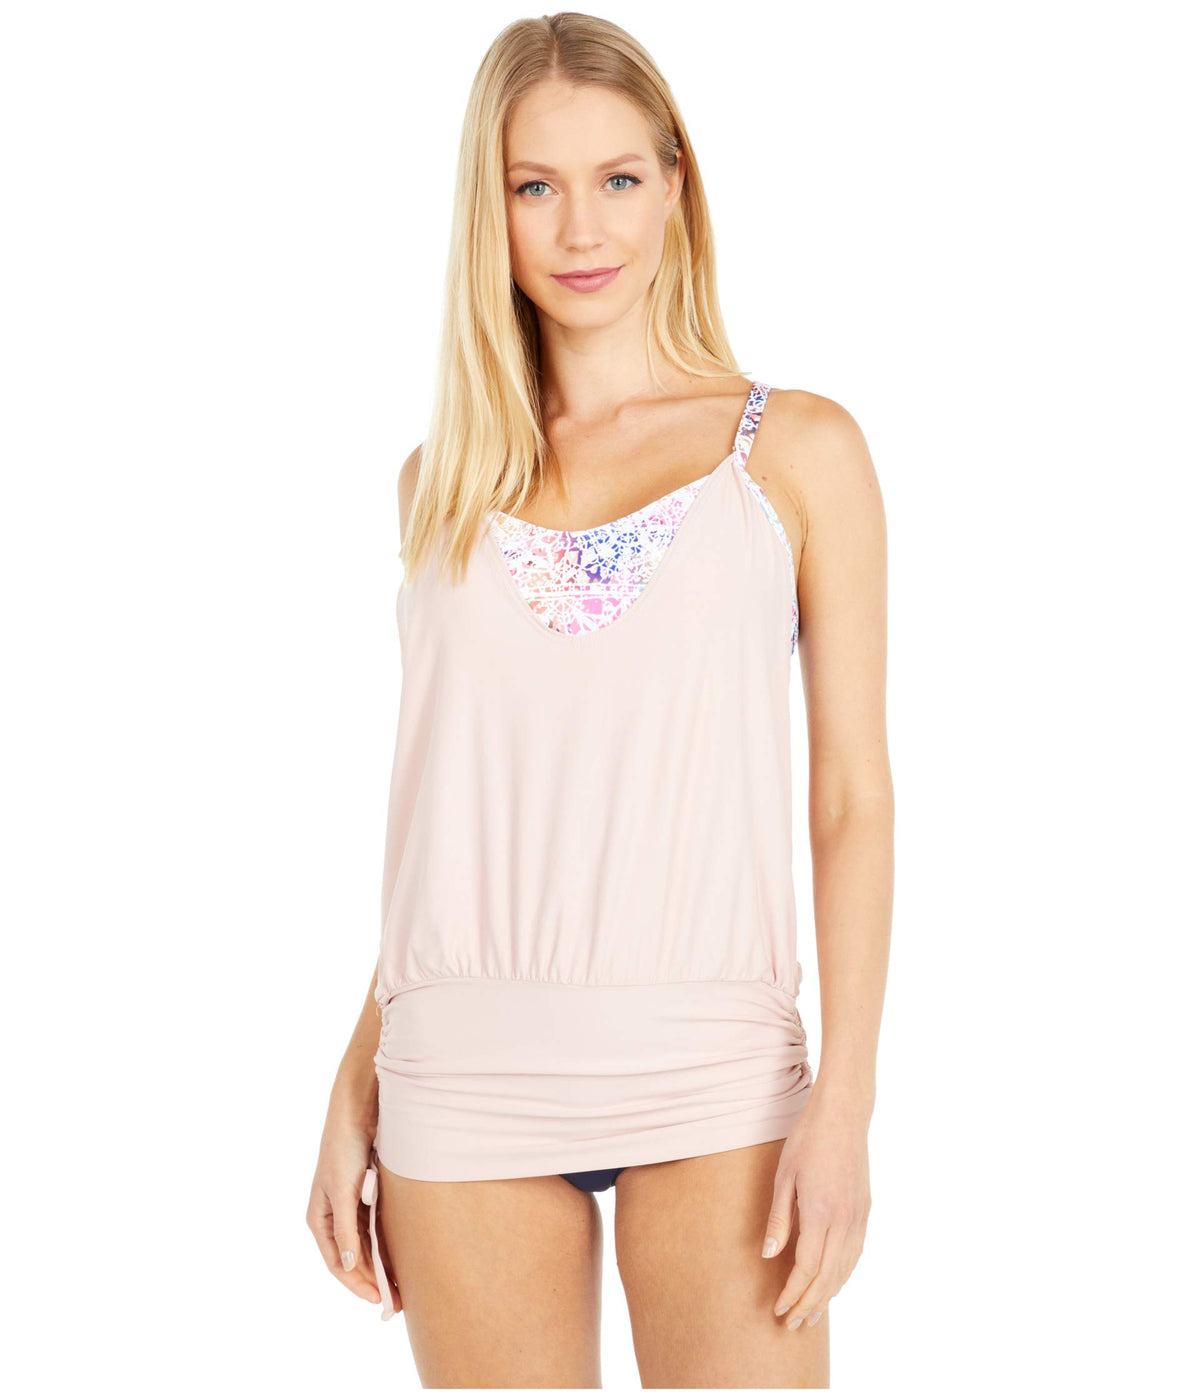 Wanderlust Extended Tankini Top